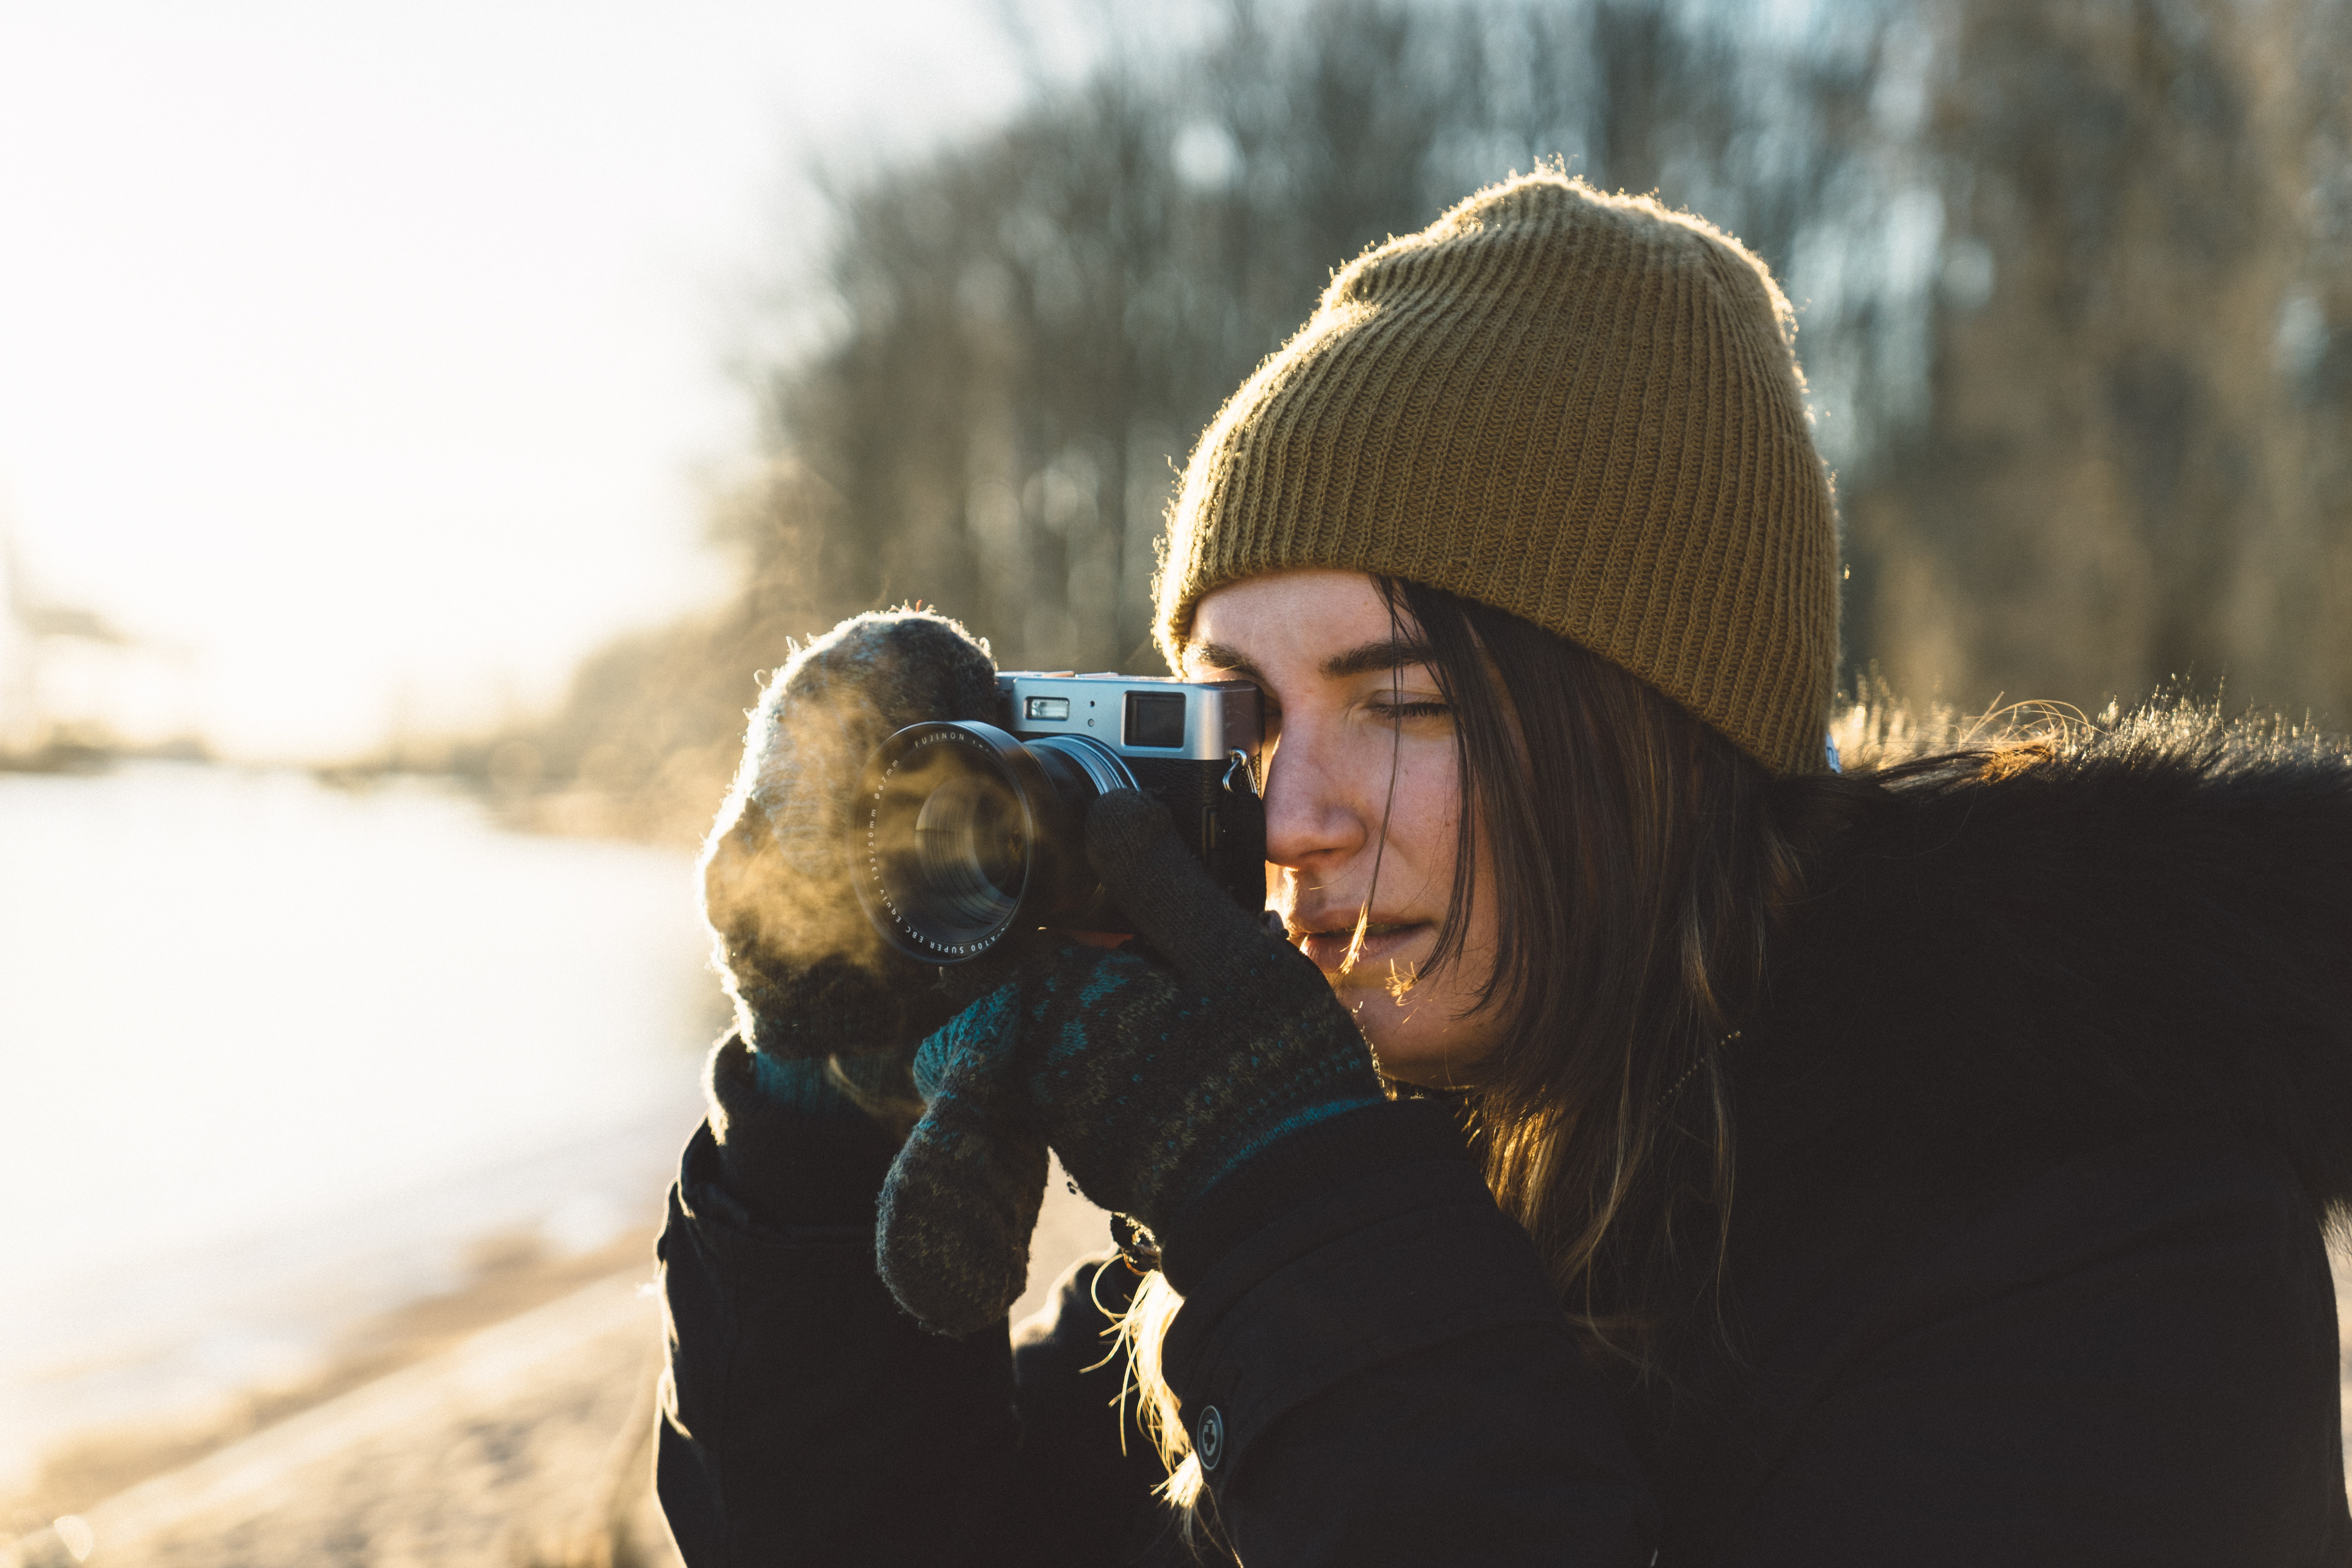 Photographer takes a picture on a vintage camera on a cold day